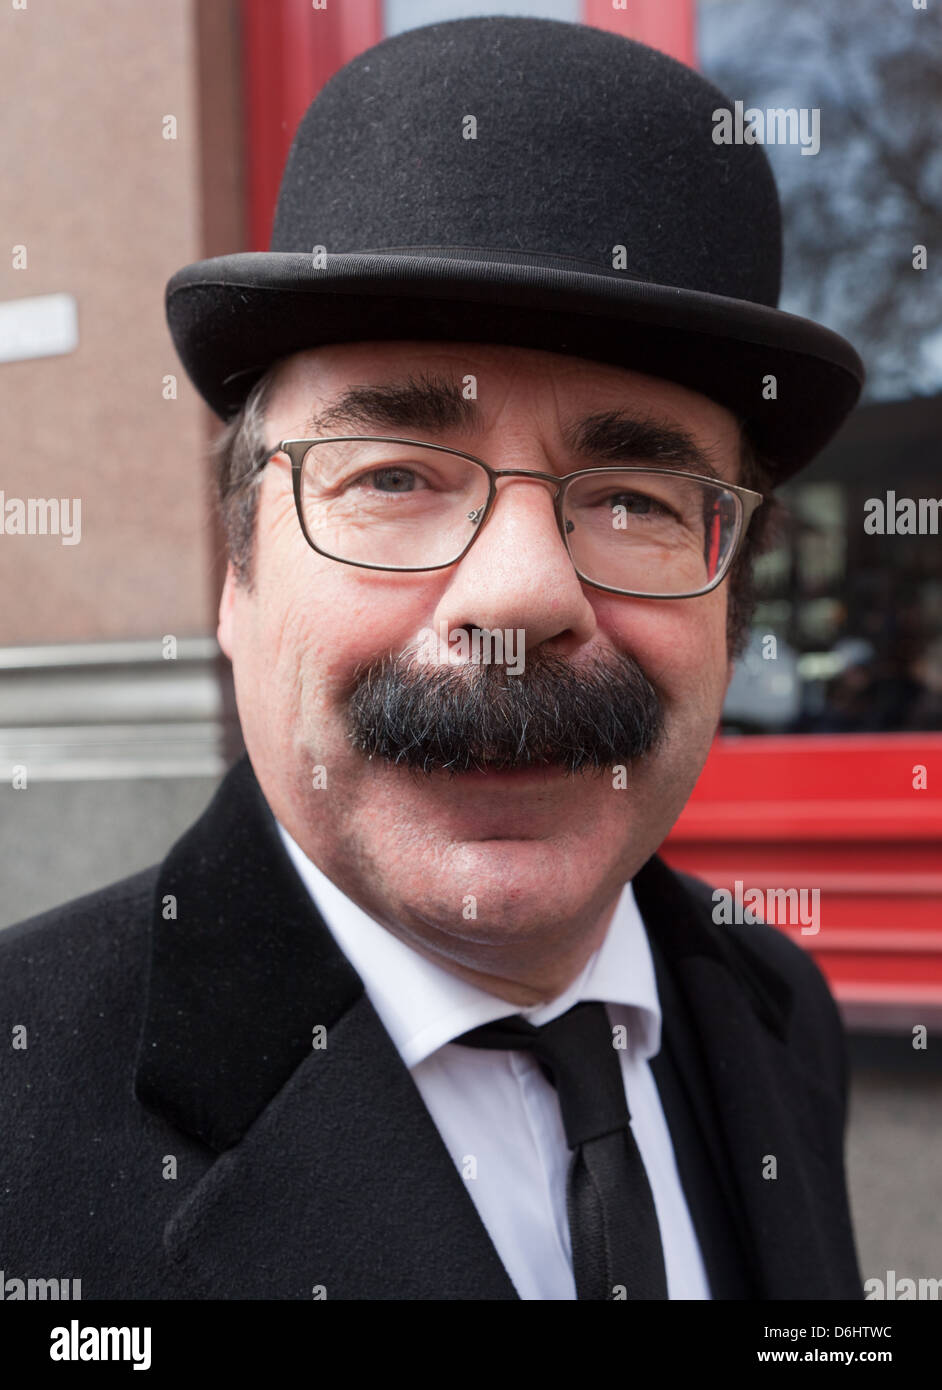 Traditional City Gent In Bowler Hat London UK - Stock Image